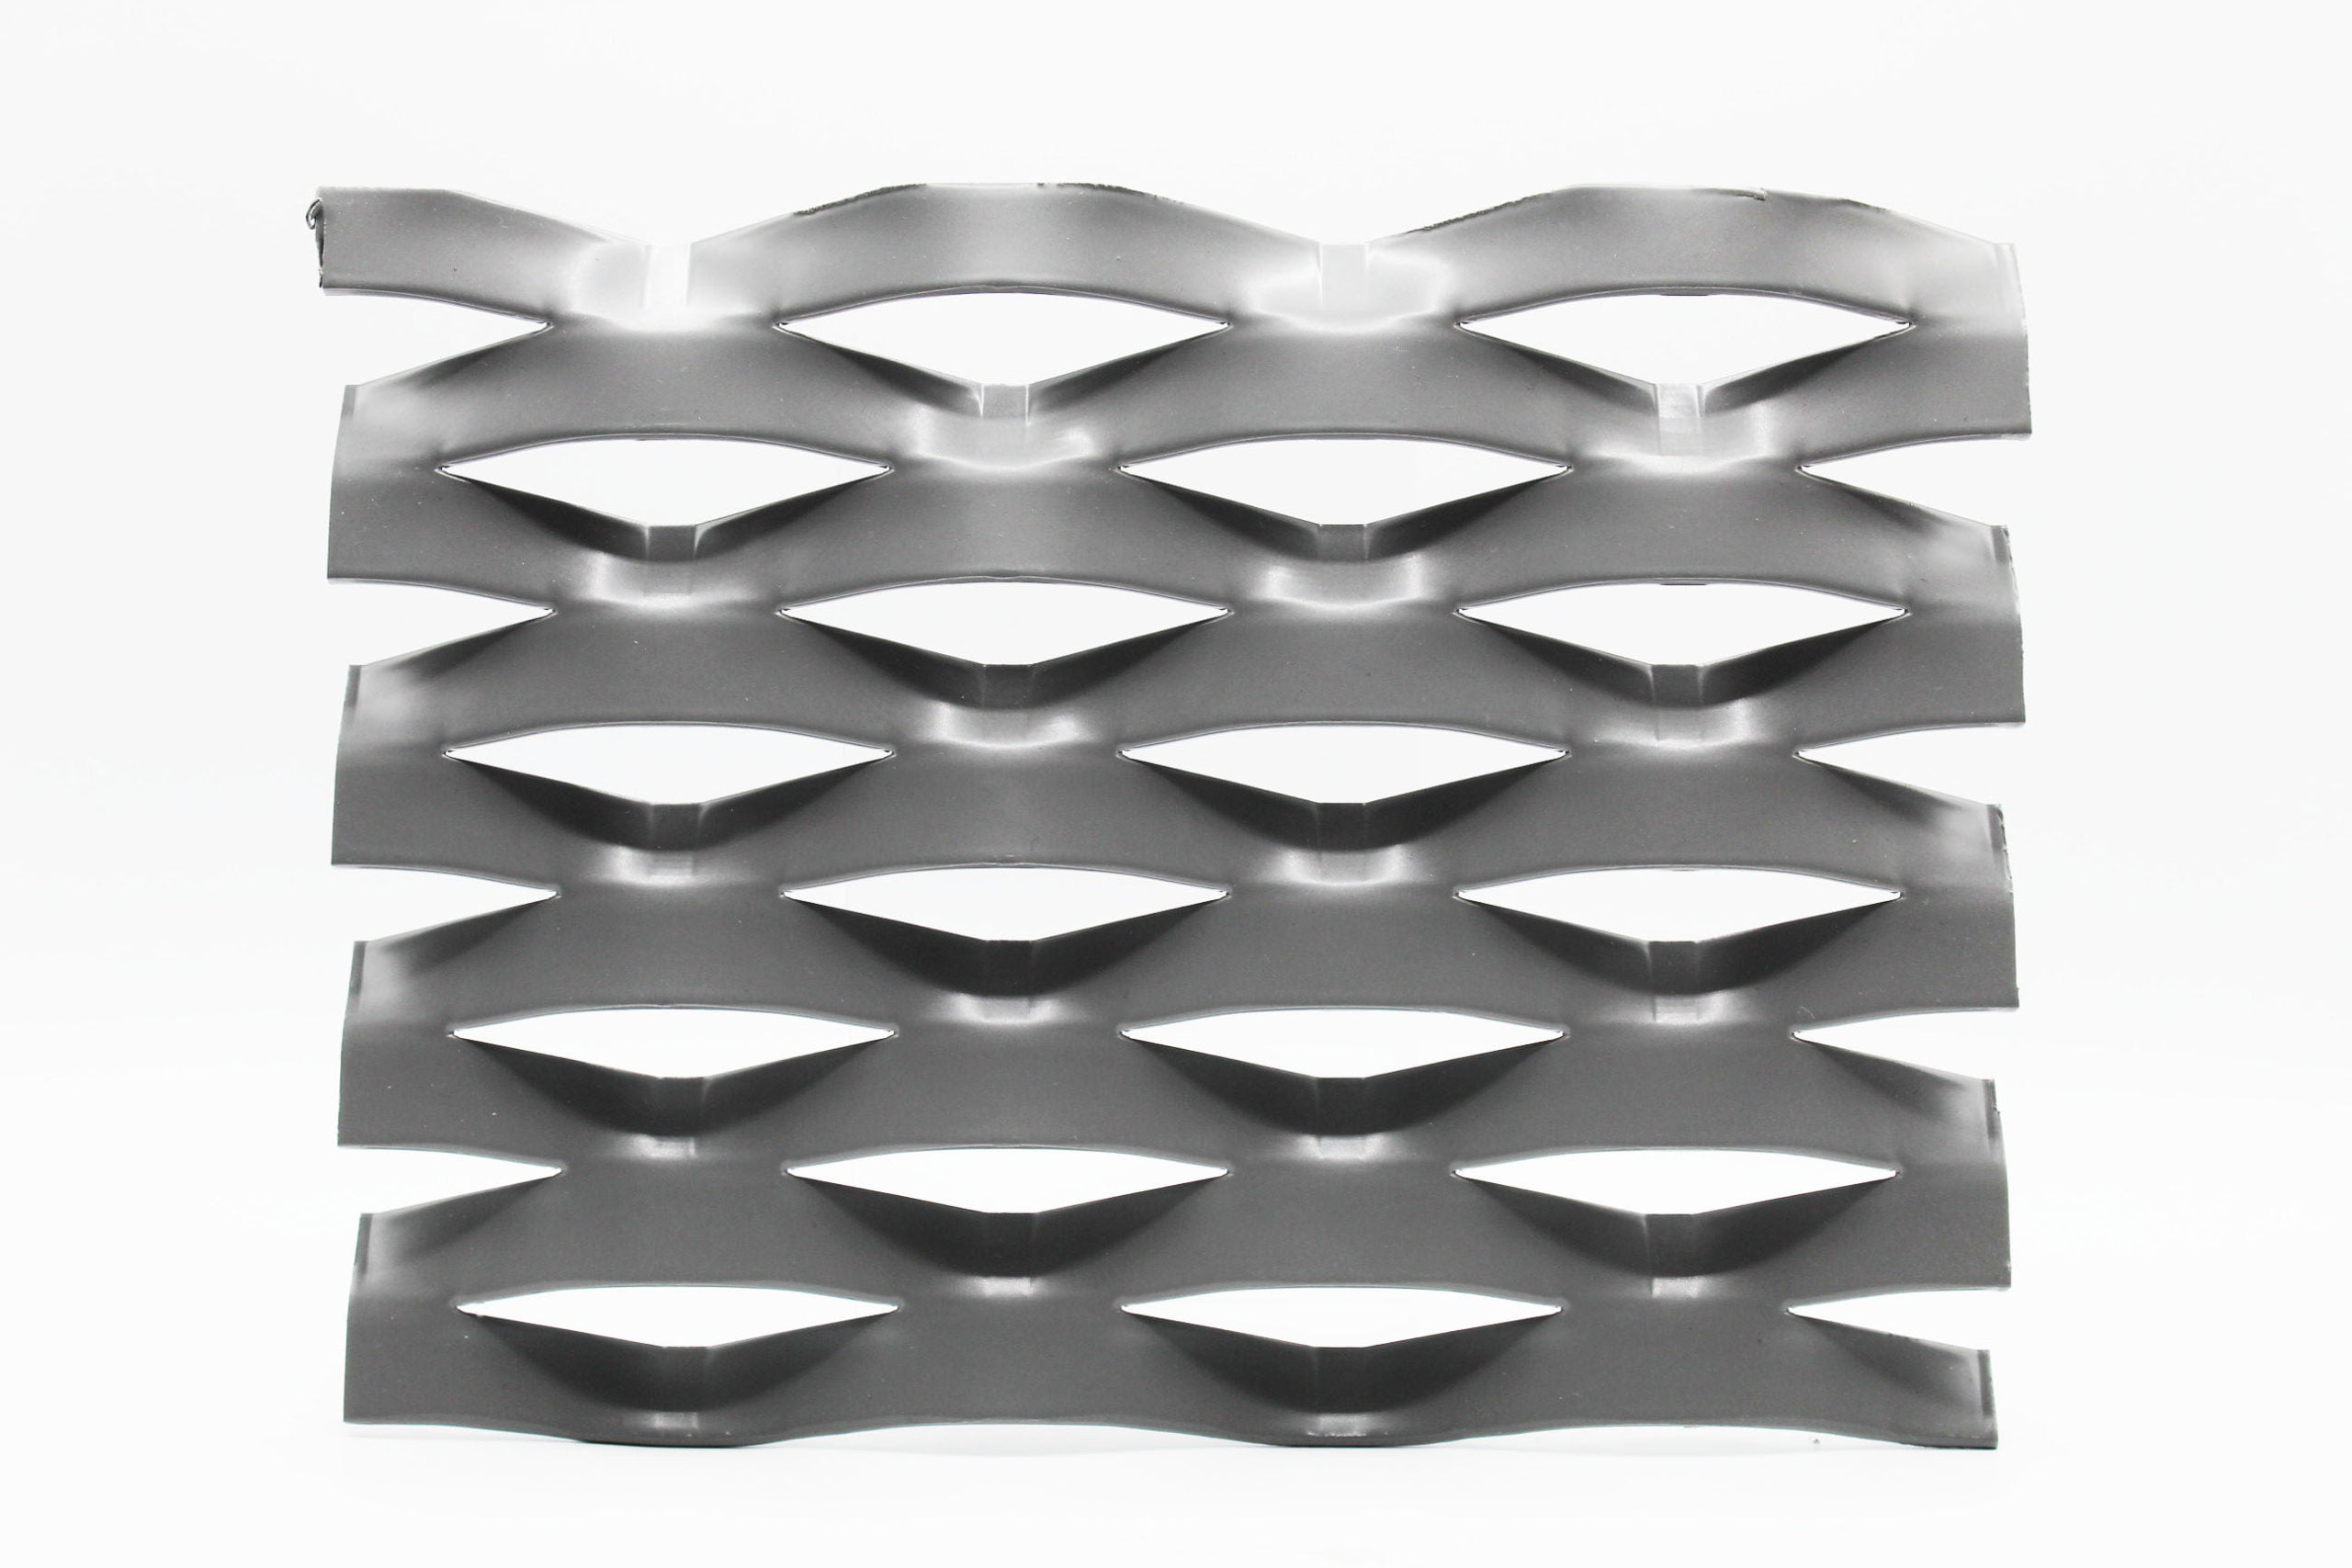 Garston grey expanded architectural mesh